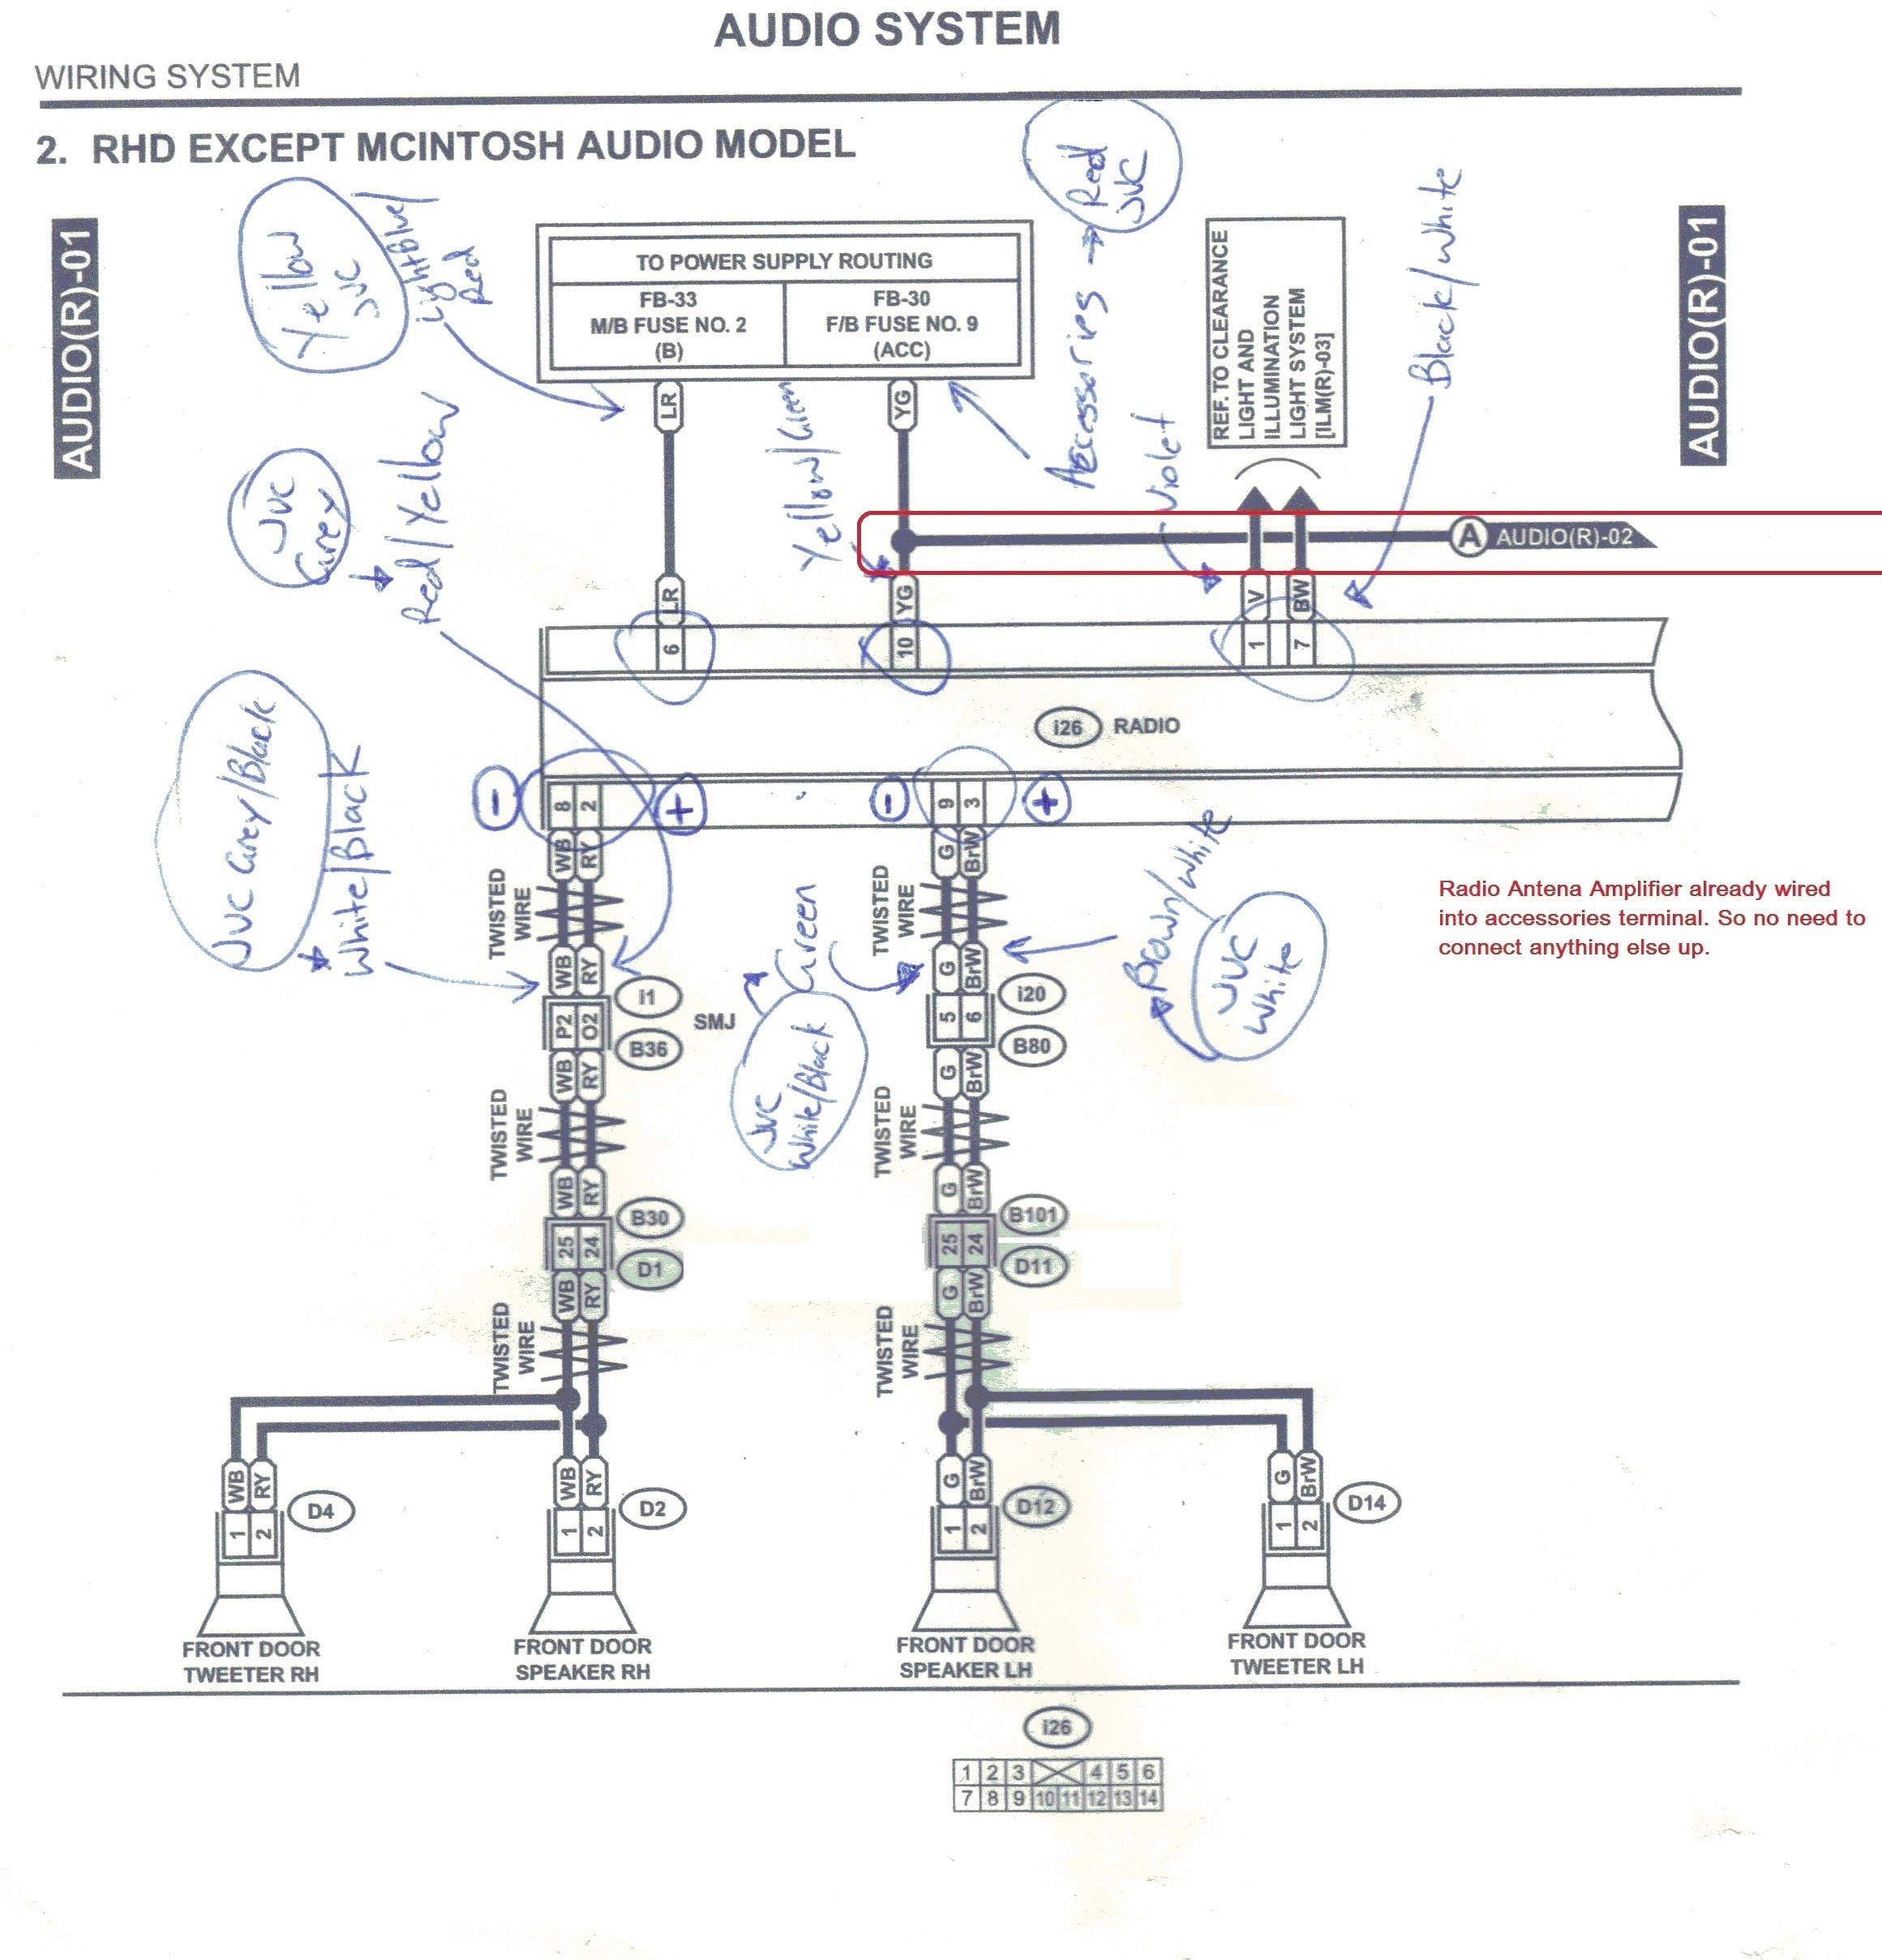 2013 subaru outback fuse box diagram wiring library rh 57 informaticaonlinetraining co